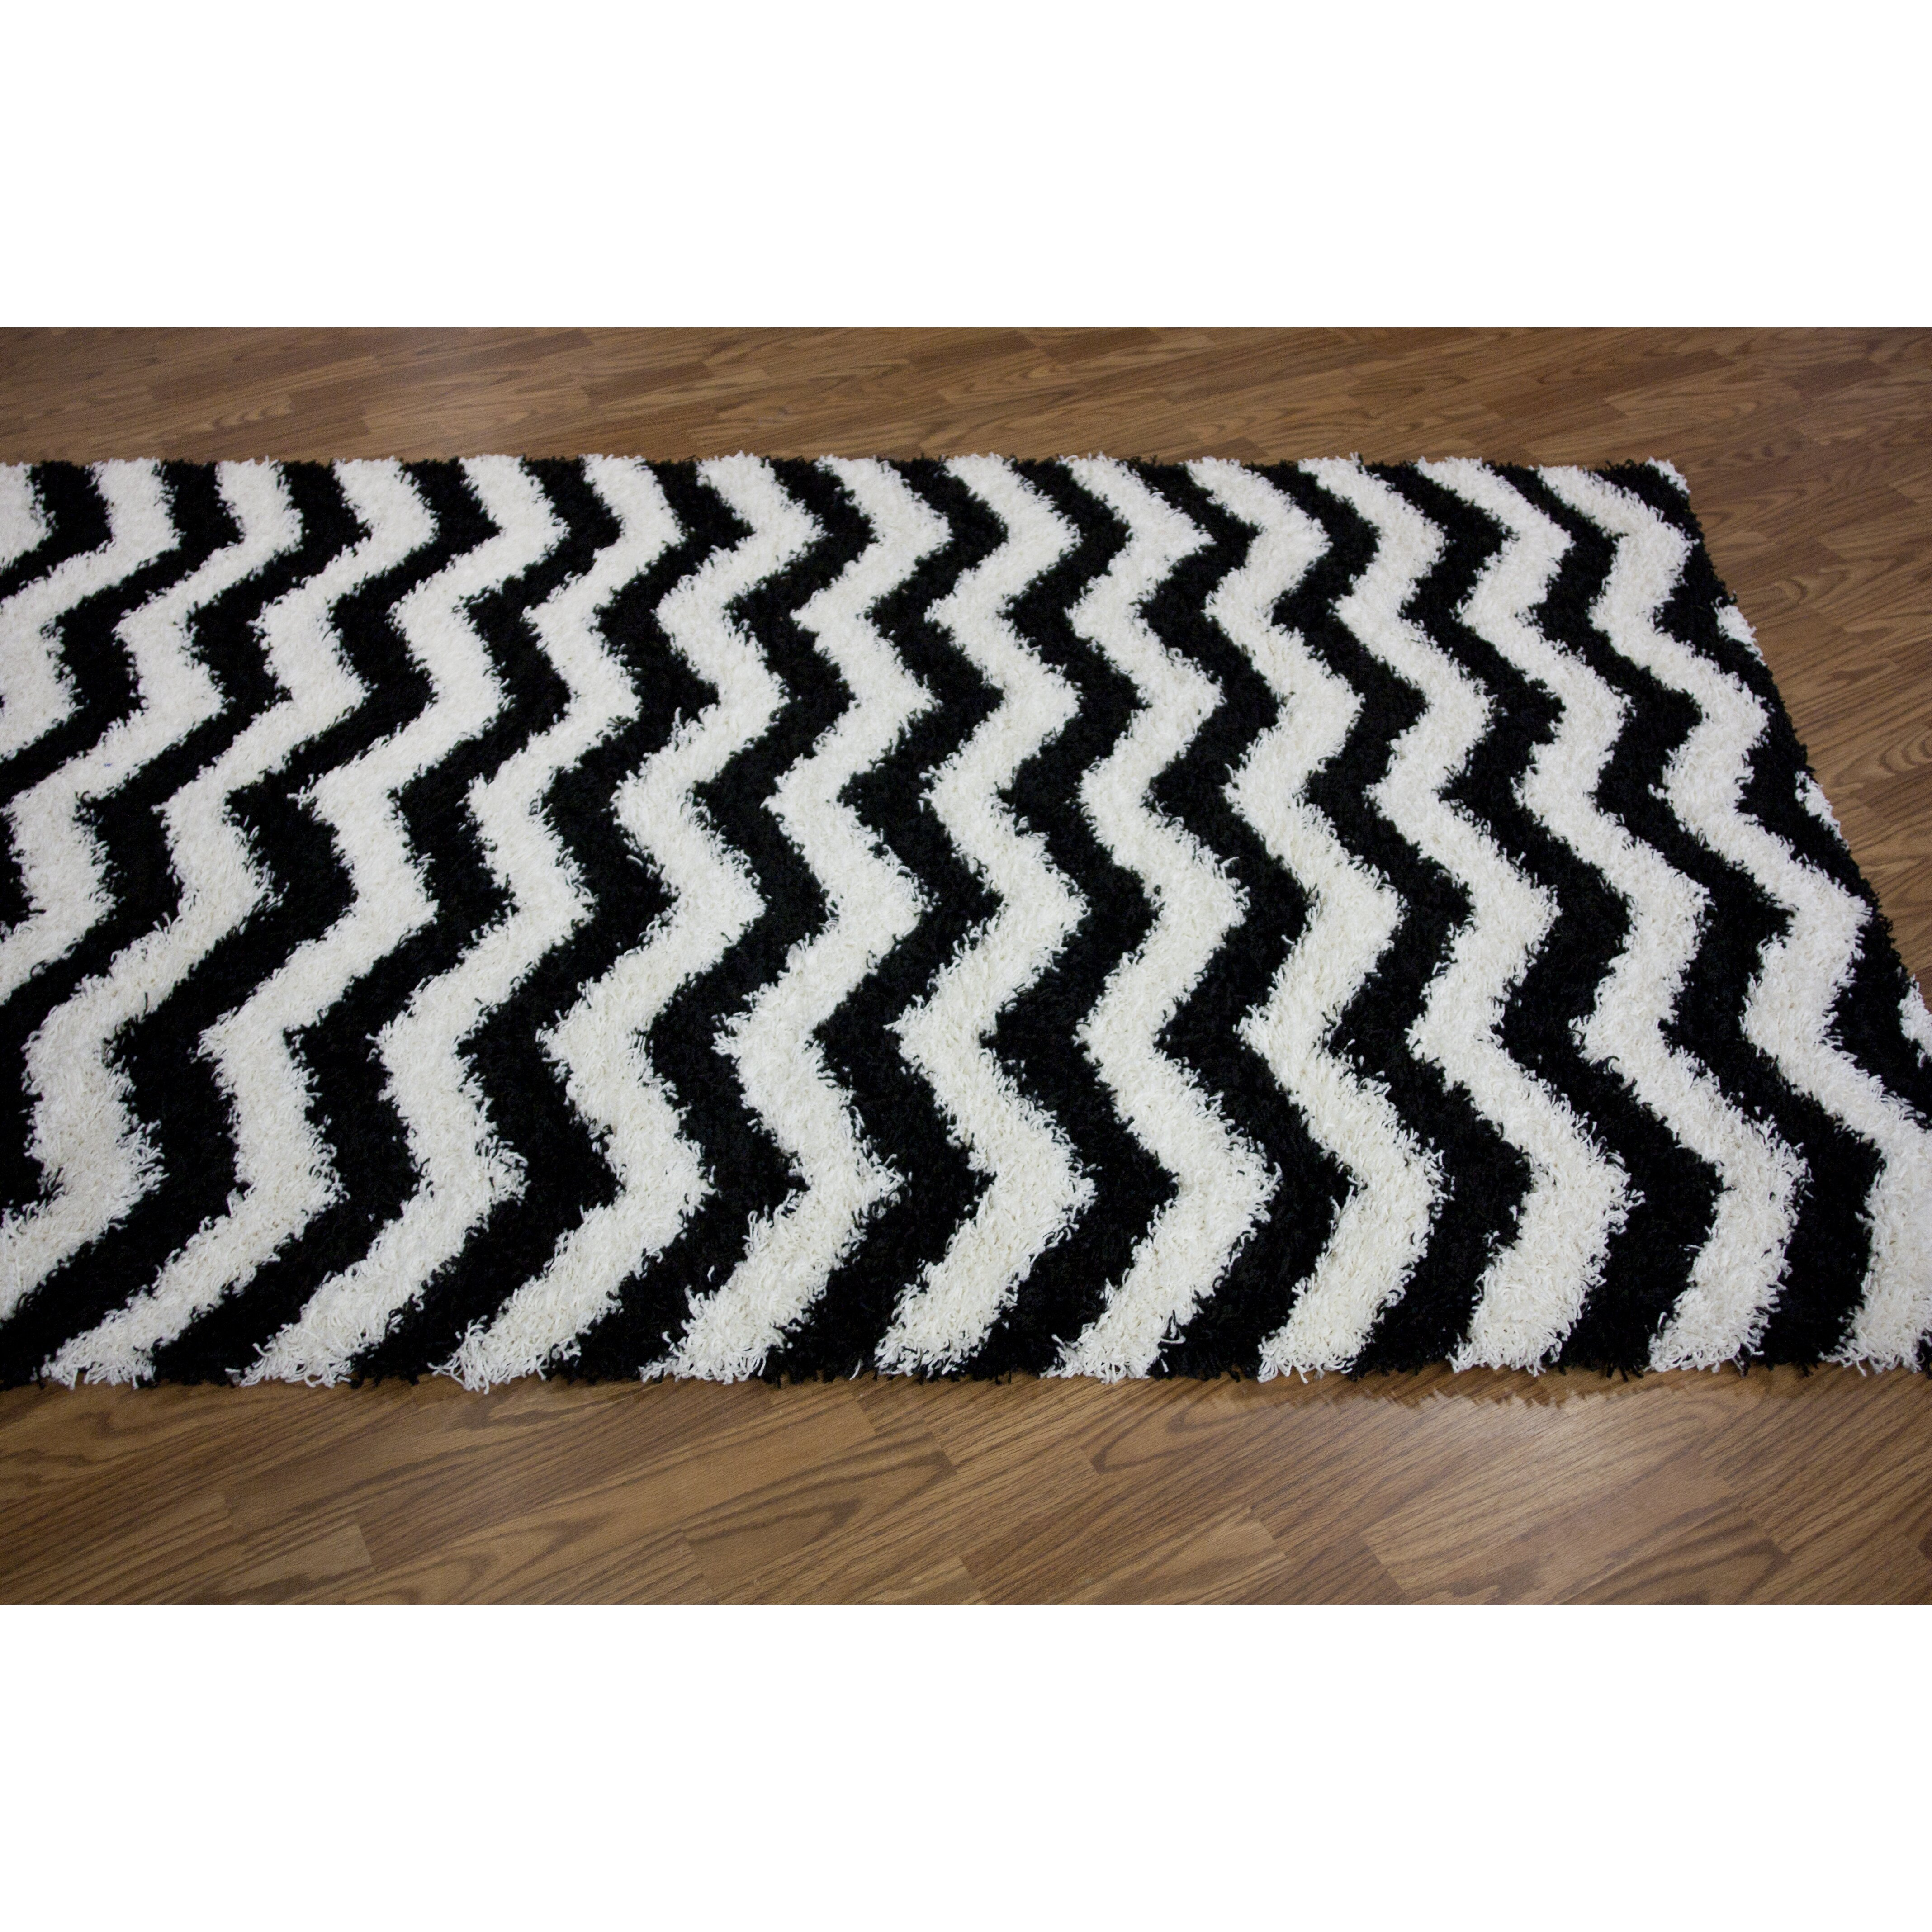 Nuloom Black And White Rug: NuLOOM Shaggy Chevron Black/White Outdoor Area Rug